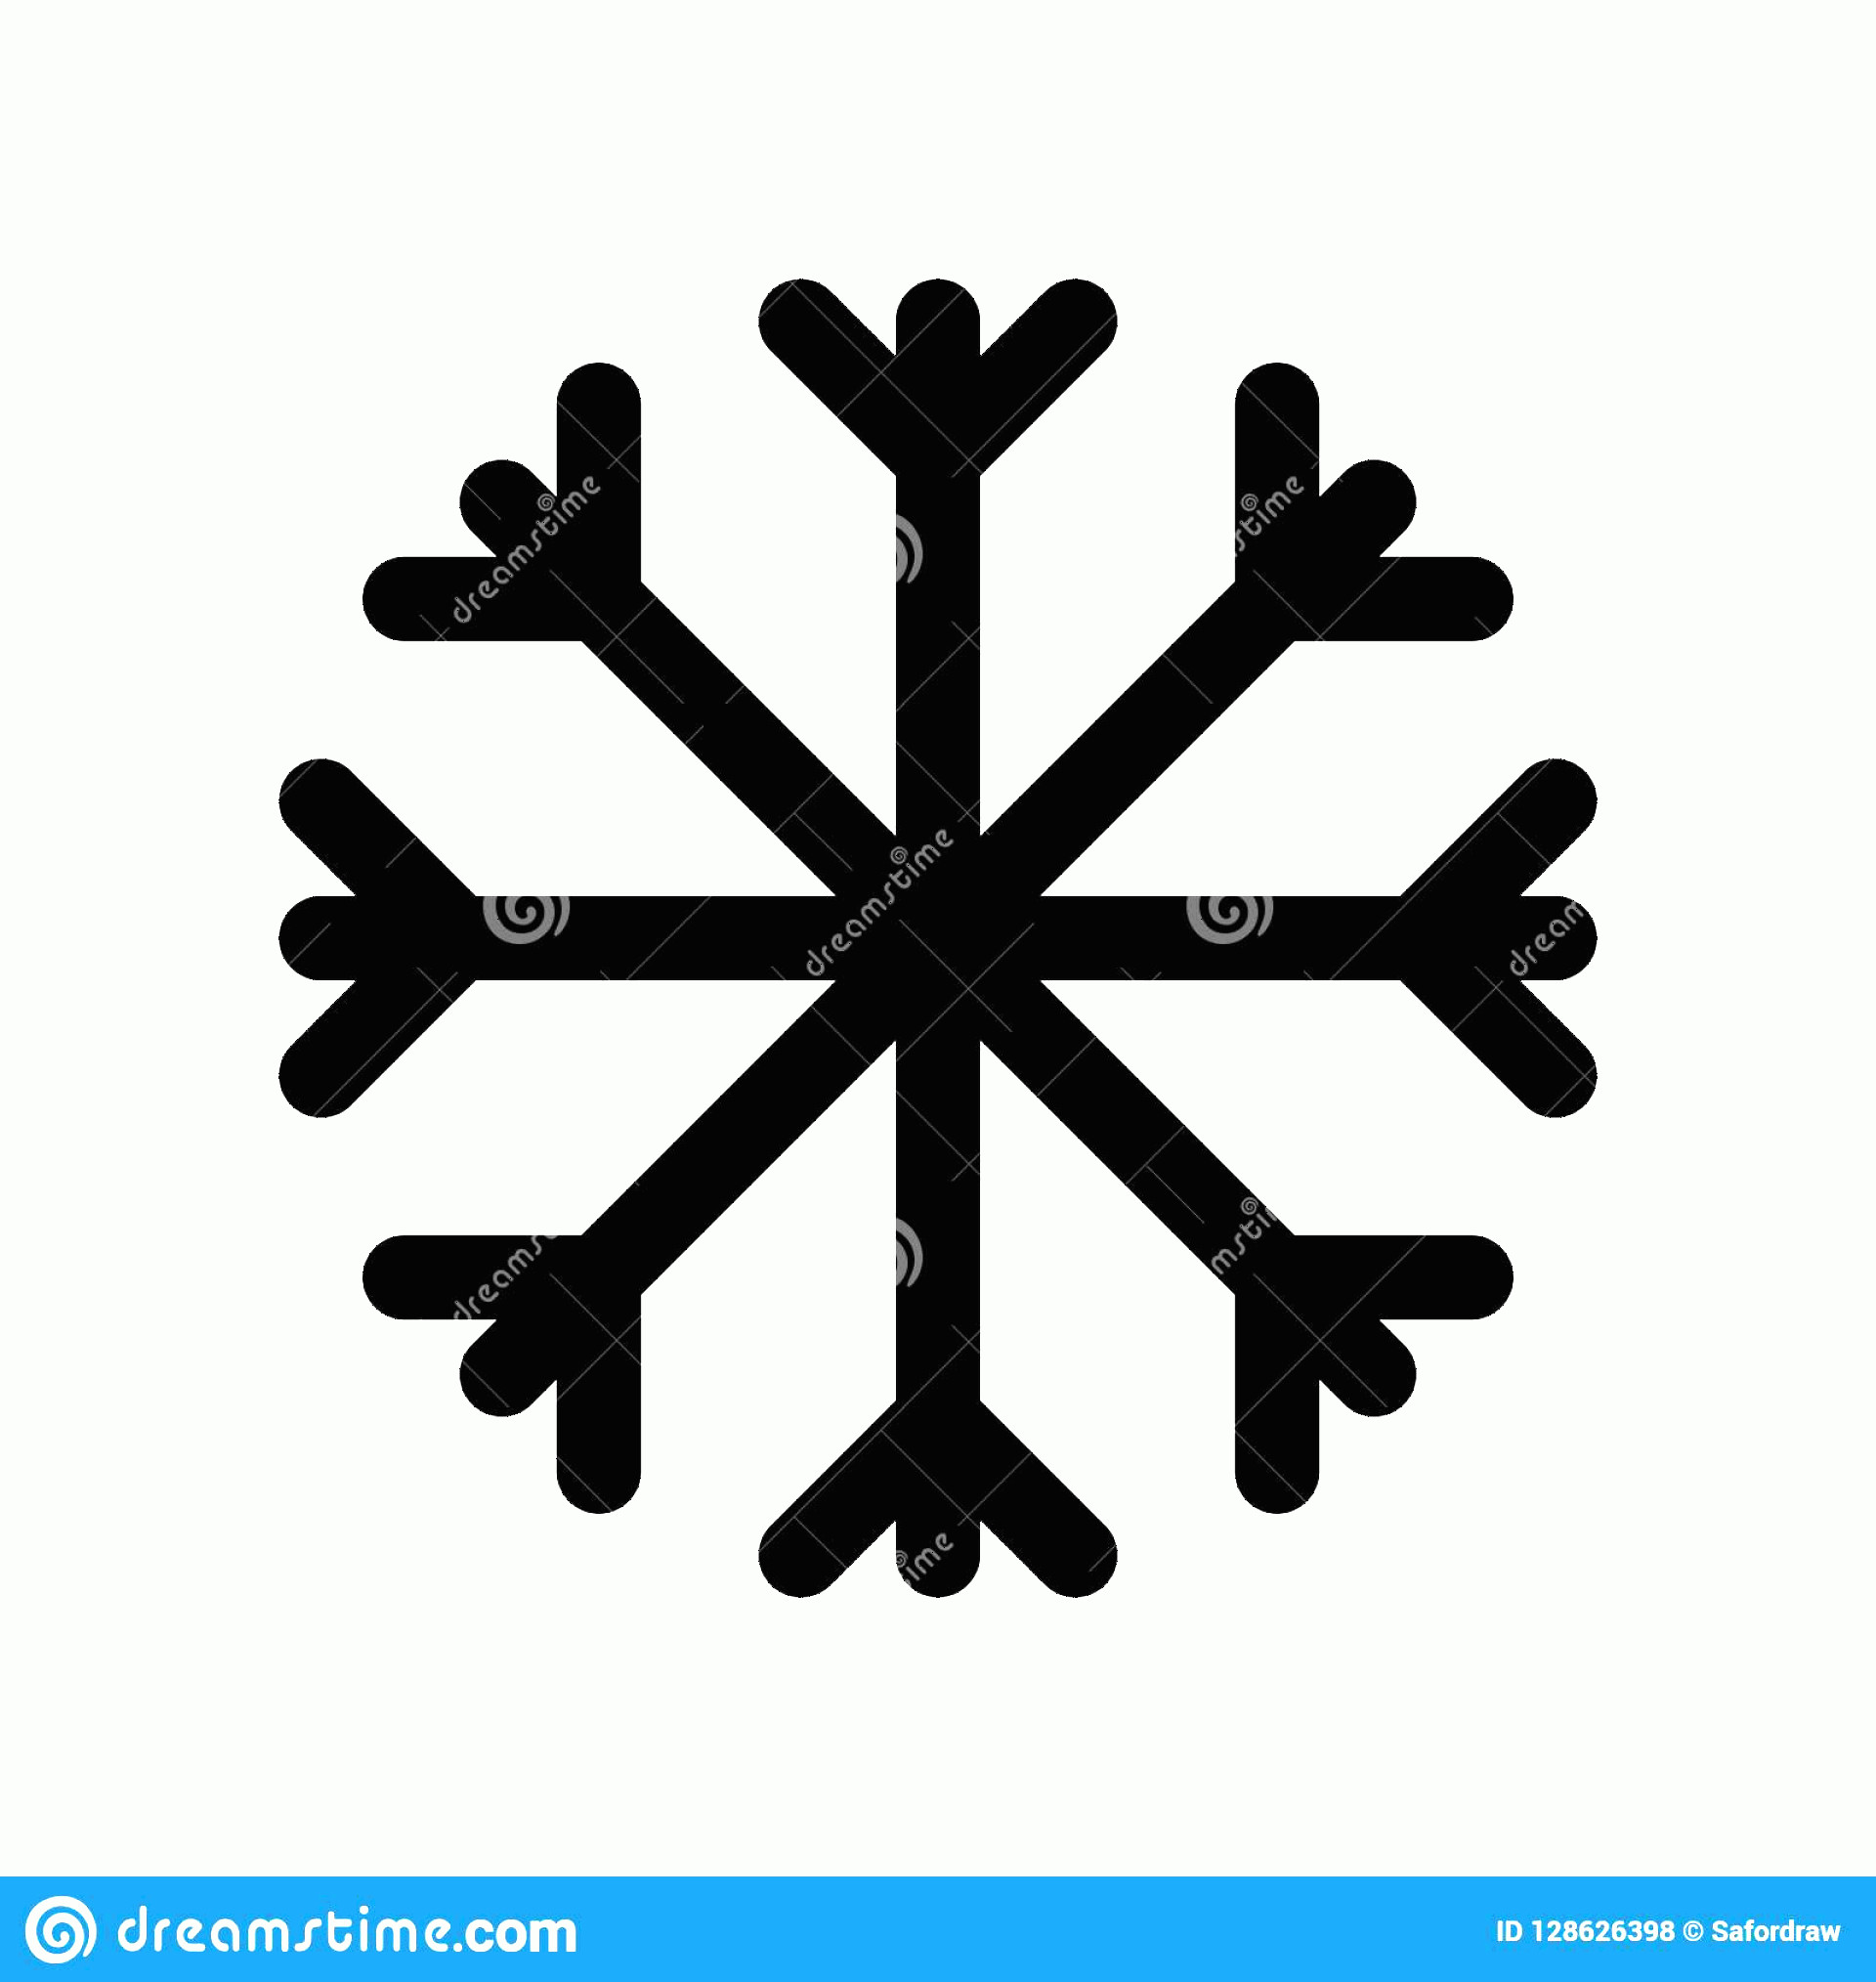 Simple Black Vector Snowflake: Simple Graphic Black Flat Vector Snowflake Icon Isolated Elemen Element Decoration Seasonal Greeting Cards Wallpapers Image